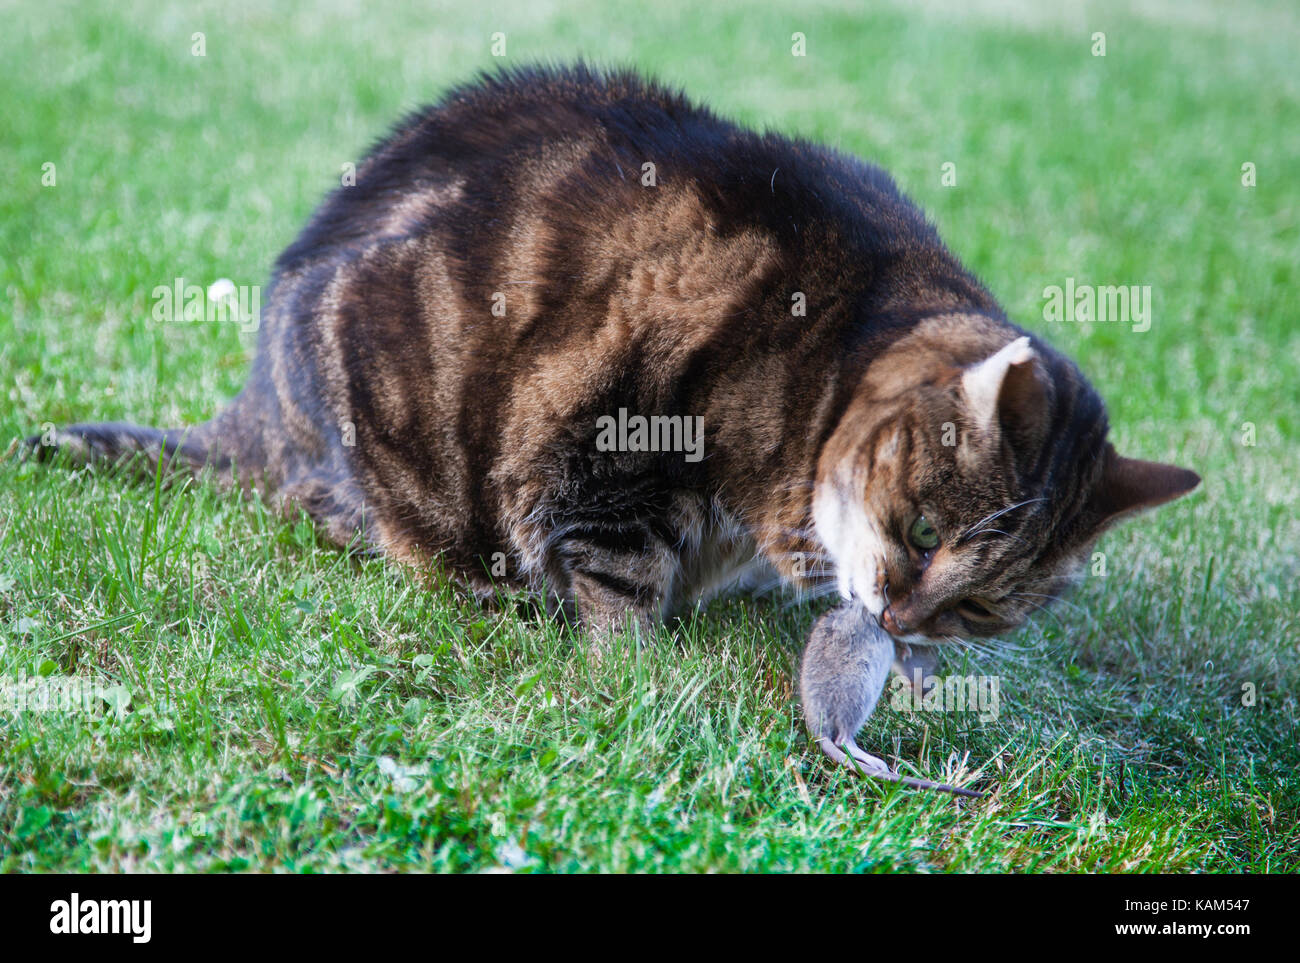 Katt och råtta / Cat and mouse - Stock Image